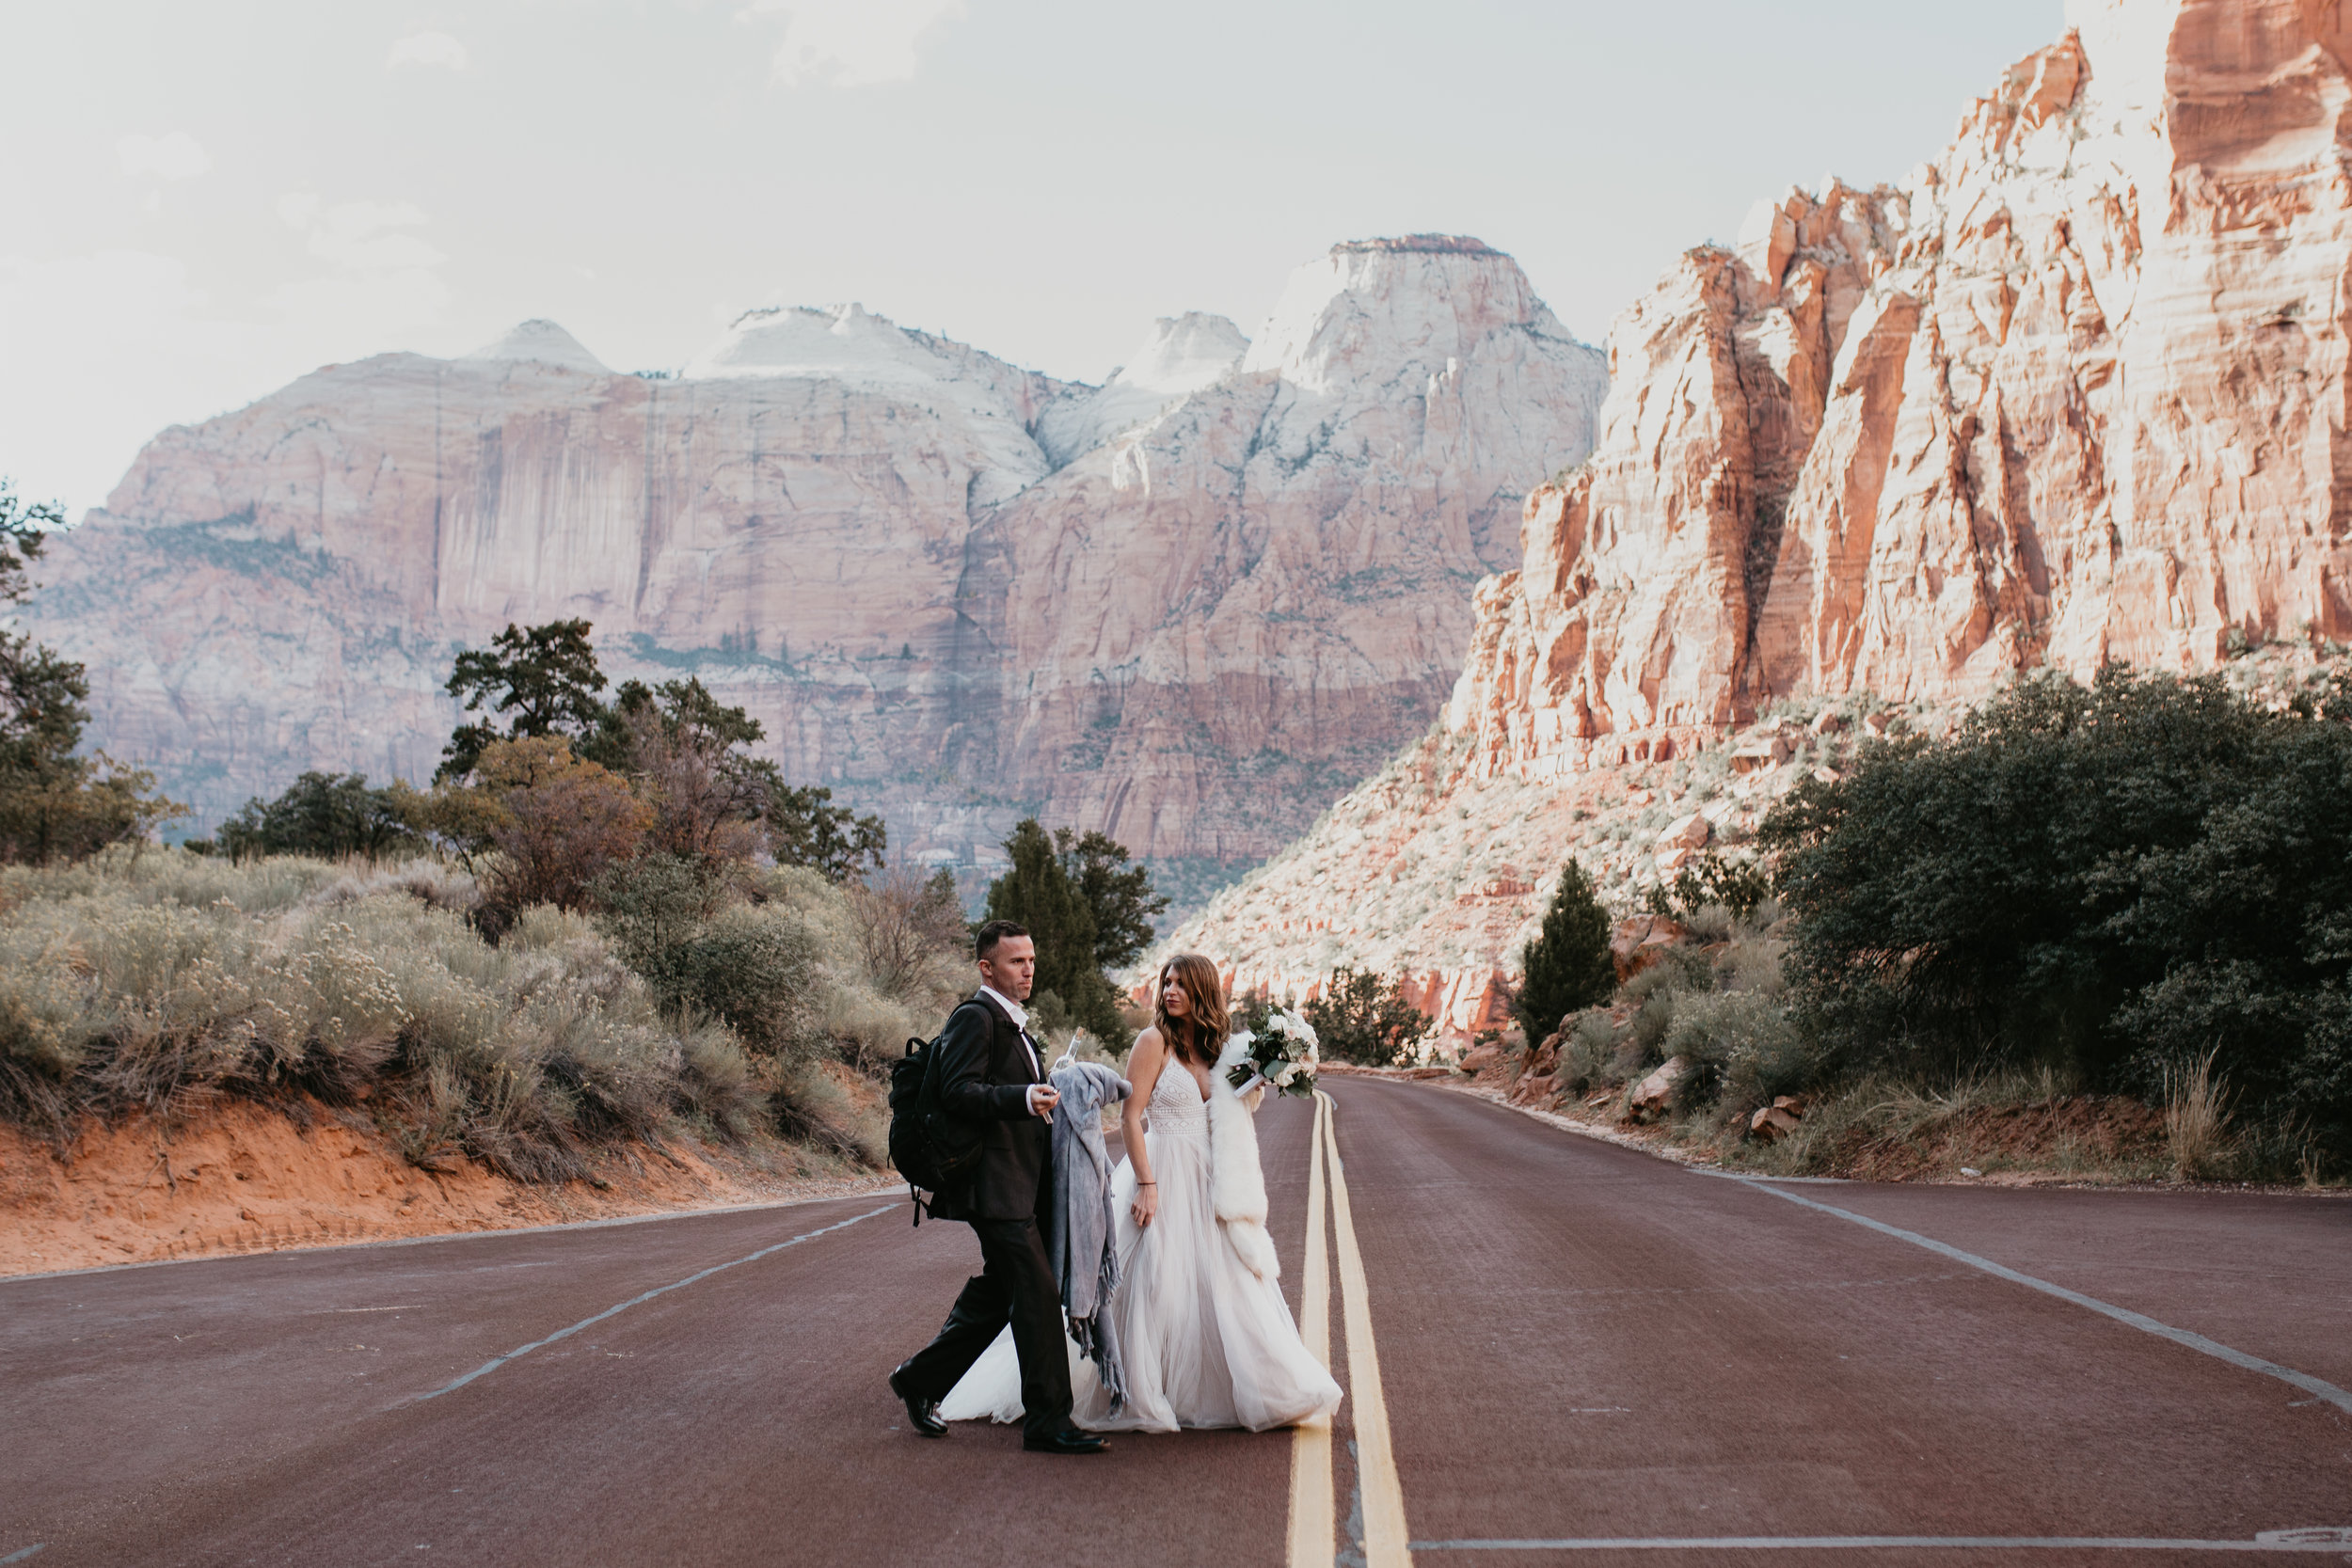 nicole-daacke-photography-zion-national-park-elopement-photographer-canyon-overlook-trail-elope-hiking-adventure-wedding-photos-fall-utah-red-rock-canyon-stgeorge-eloping-photographer-23.jpg